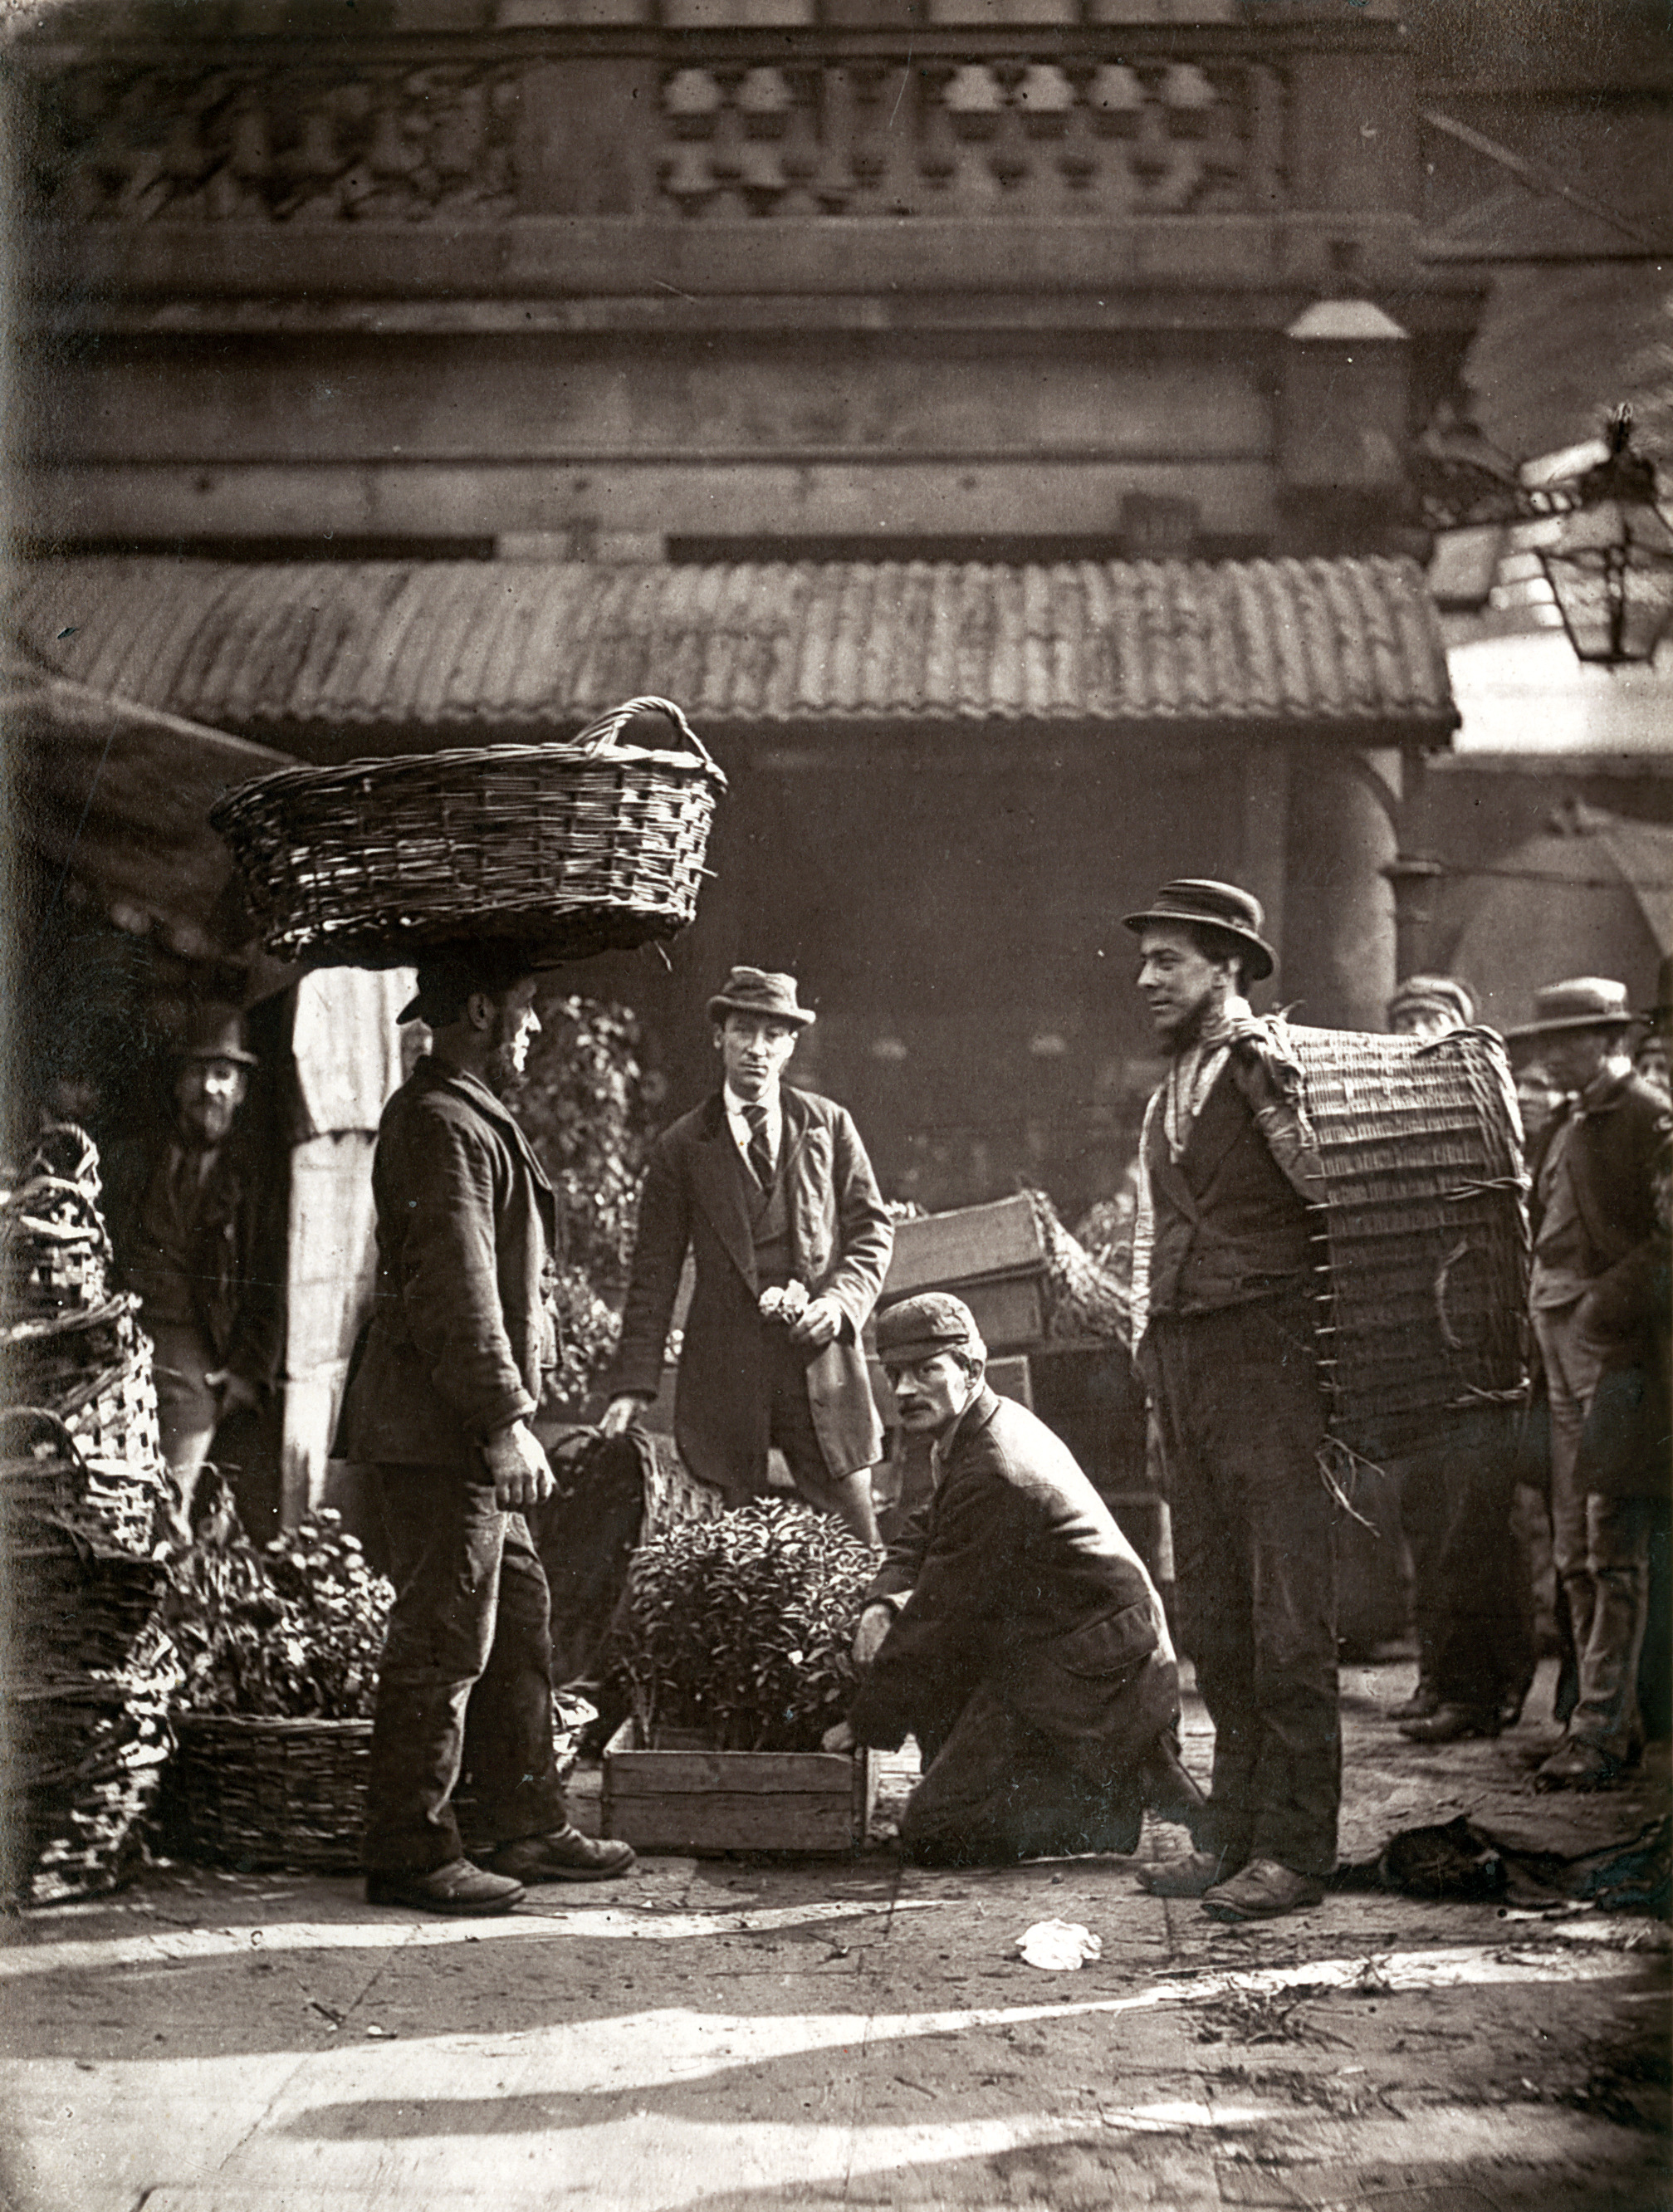 Black and white photograph of working men with large baskets, one with a basket on his head, in the market